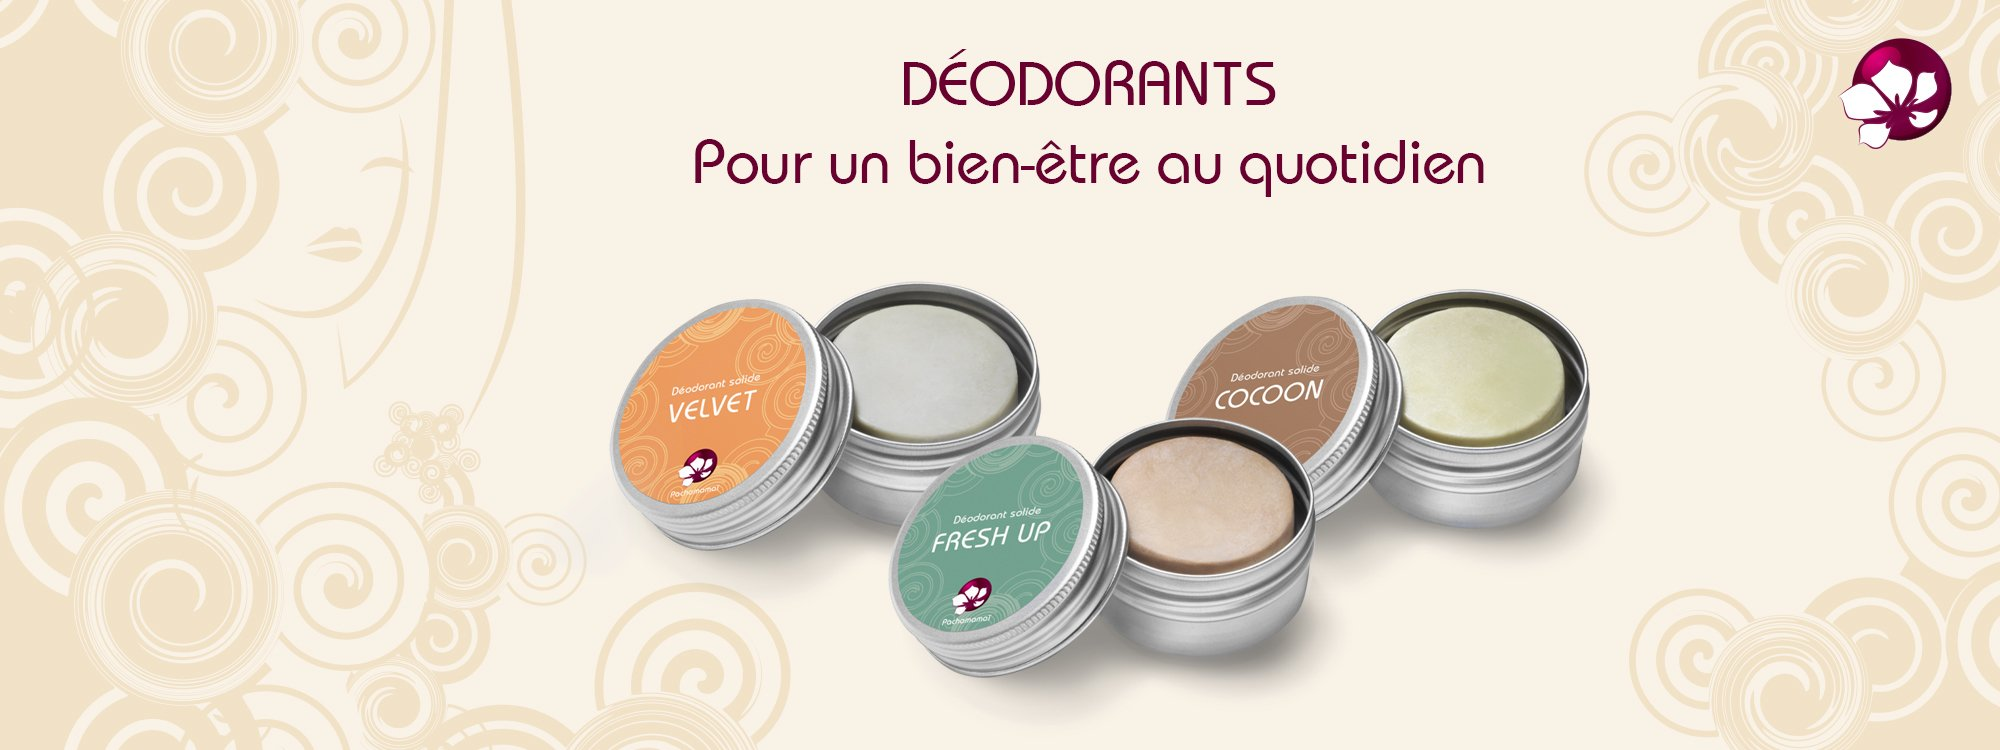 Déodorants